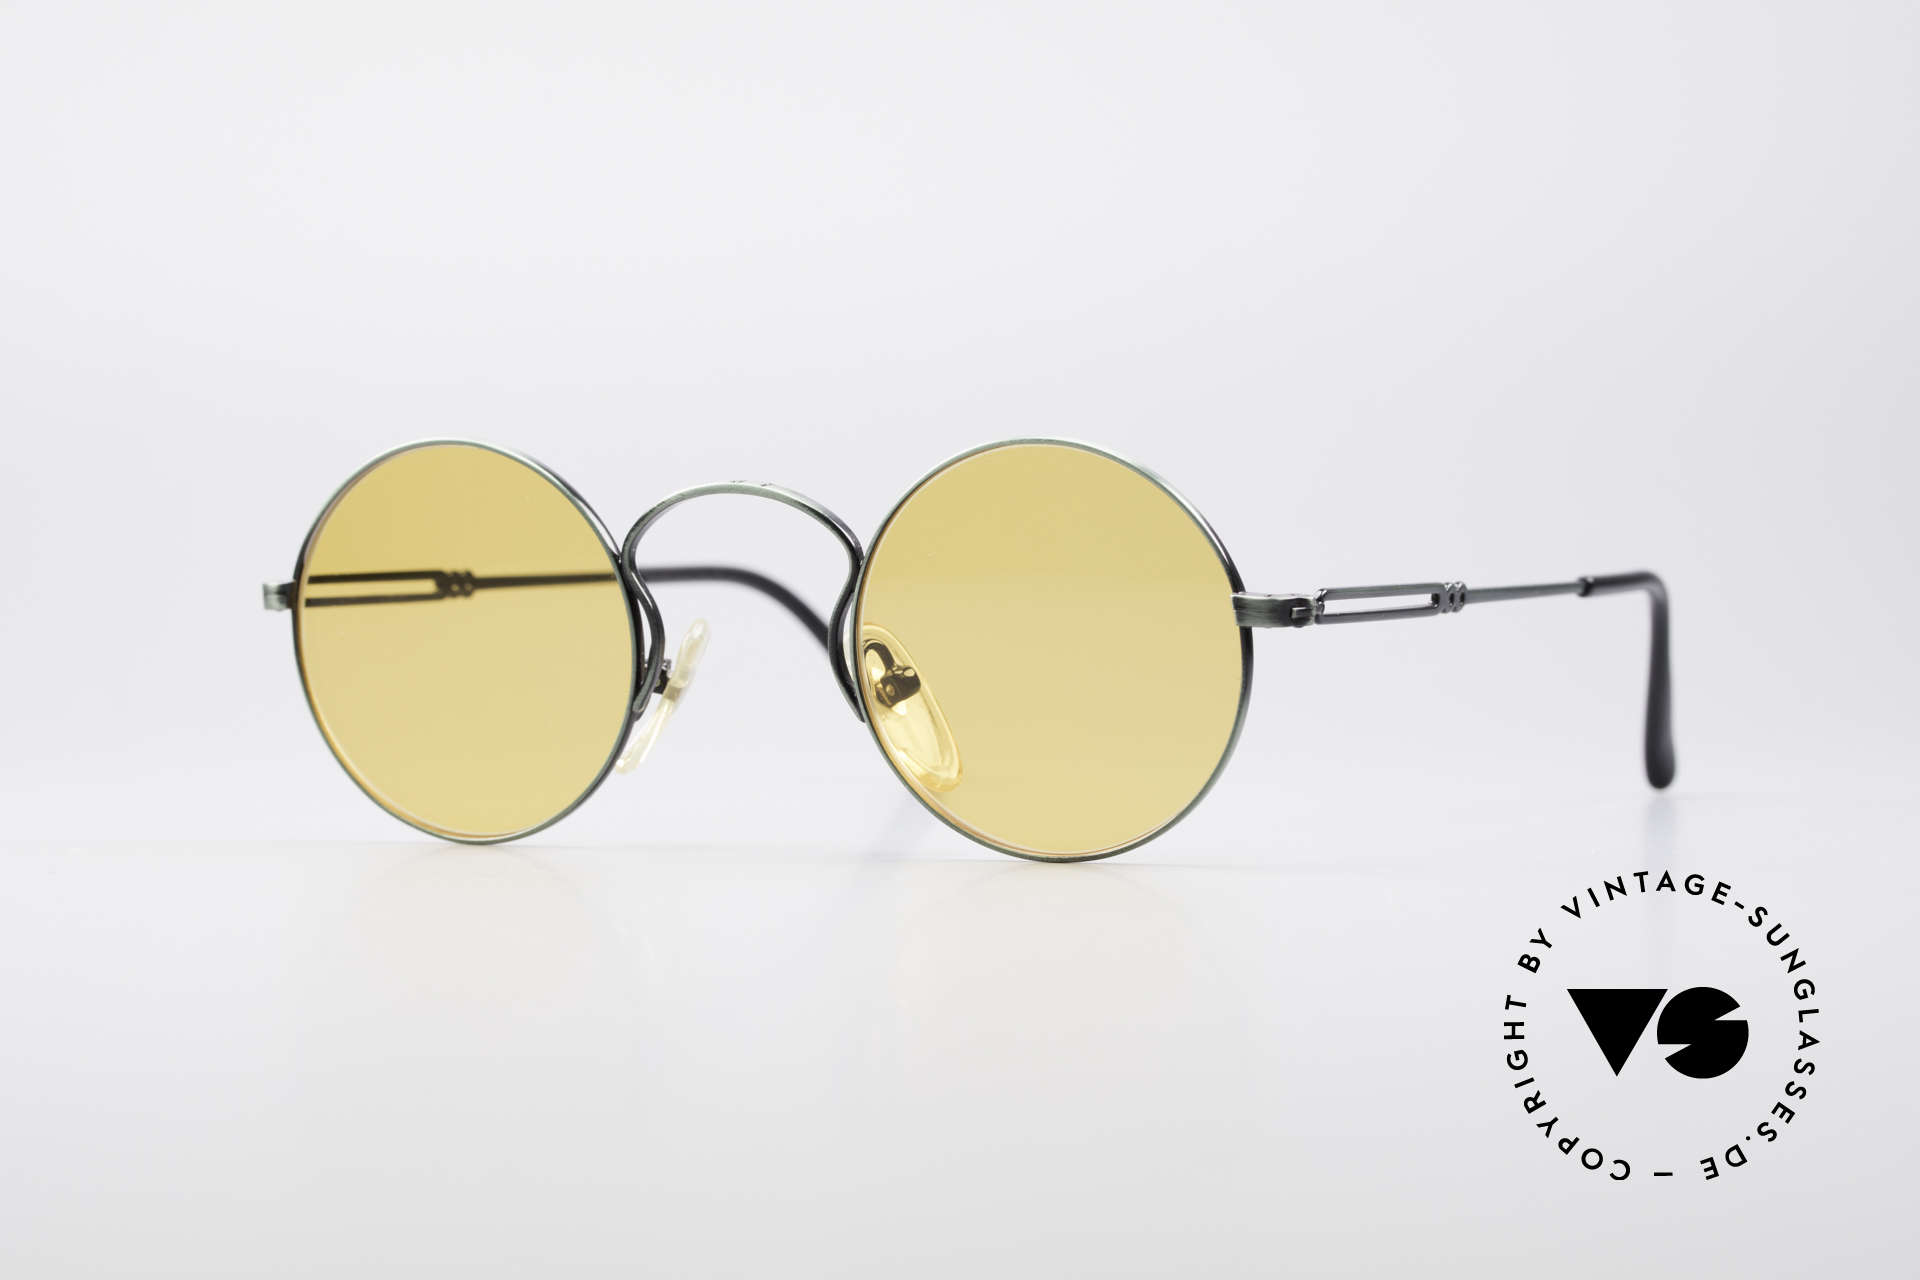 Jean Paul Gaultier 55-0172 Round Vintage Glasses JPG, designer sunglasses by Jean Paul Gaultier from 1994, Made for Men and Women